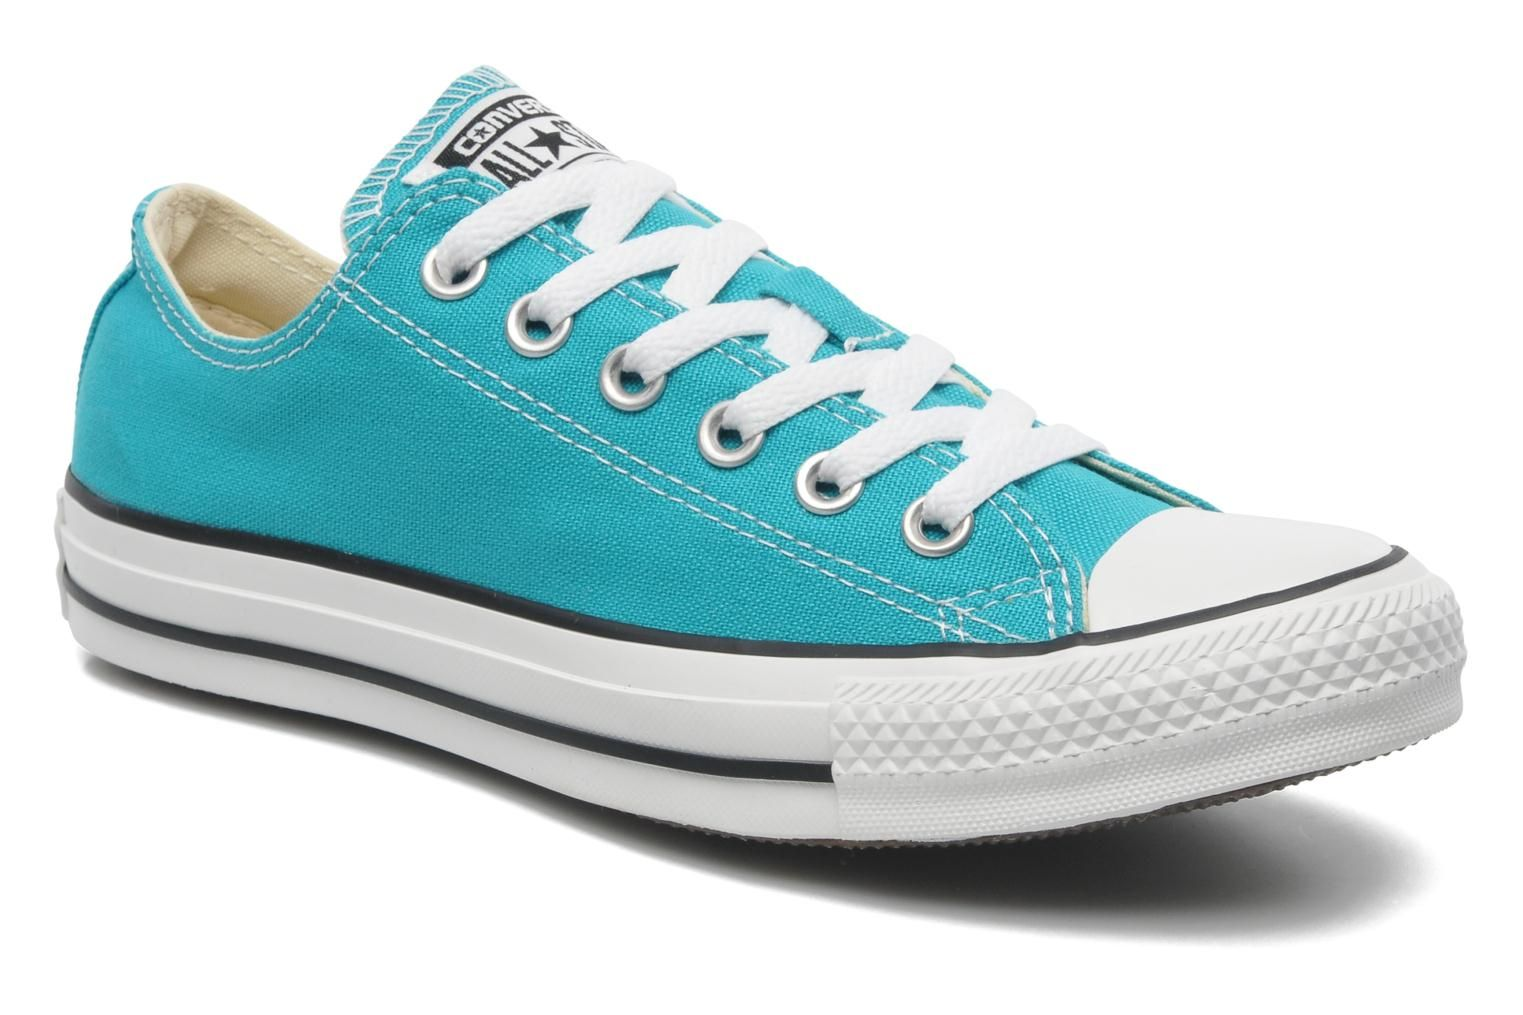 converse all star turquoise,baskets enfant converse chuck